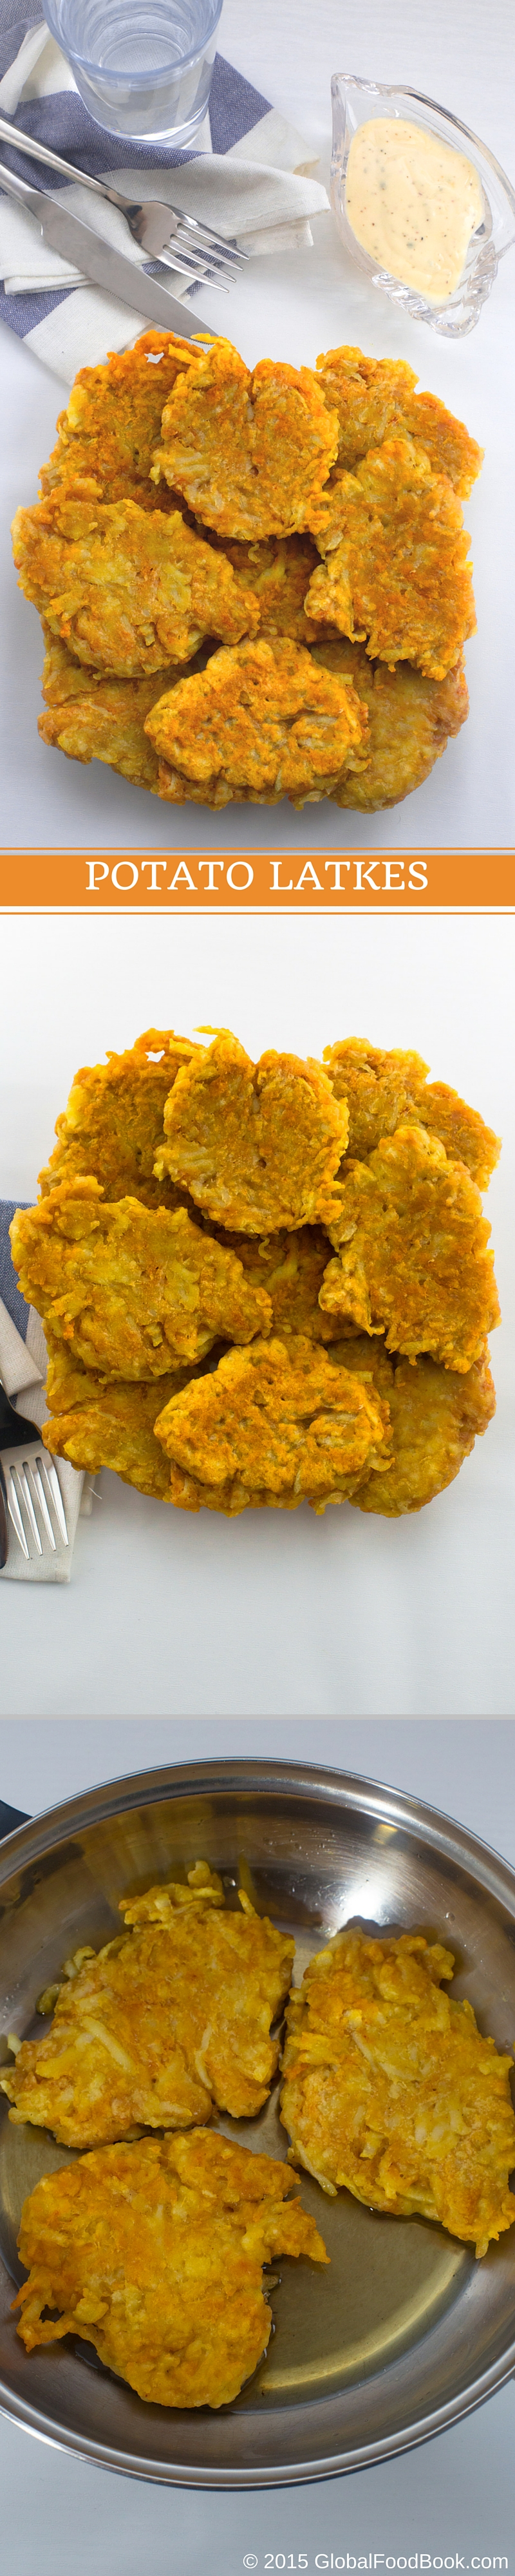 POTATO LATKES (POTATO PANCAKES) (1)